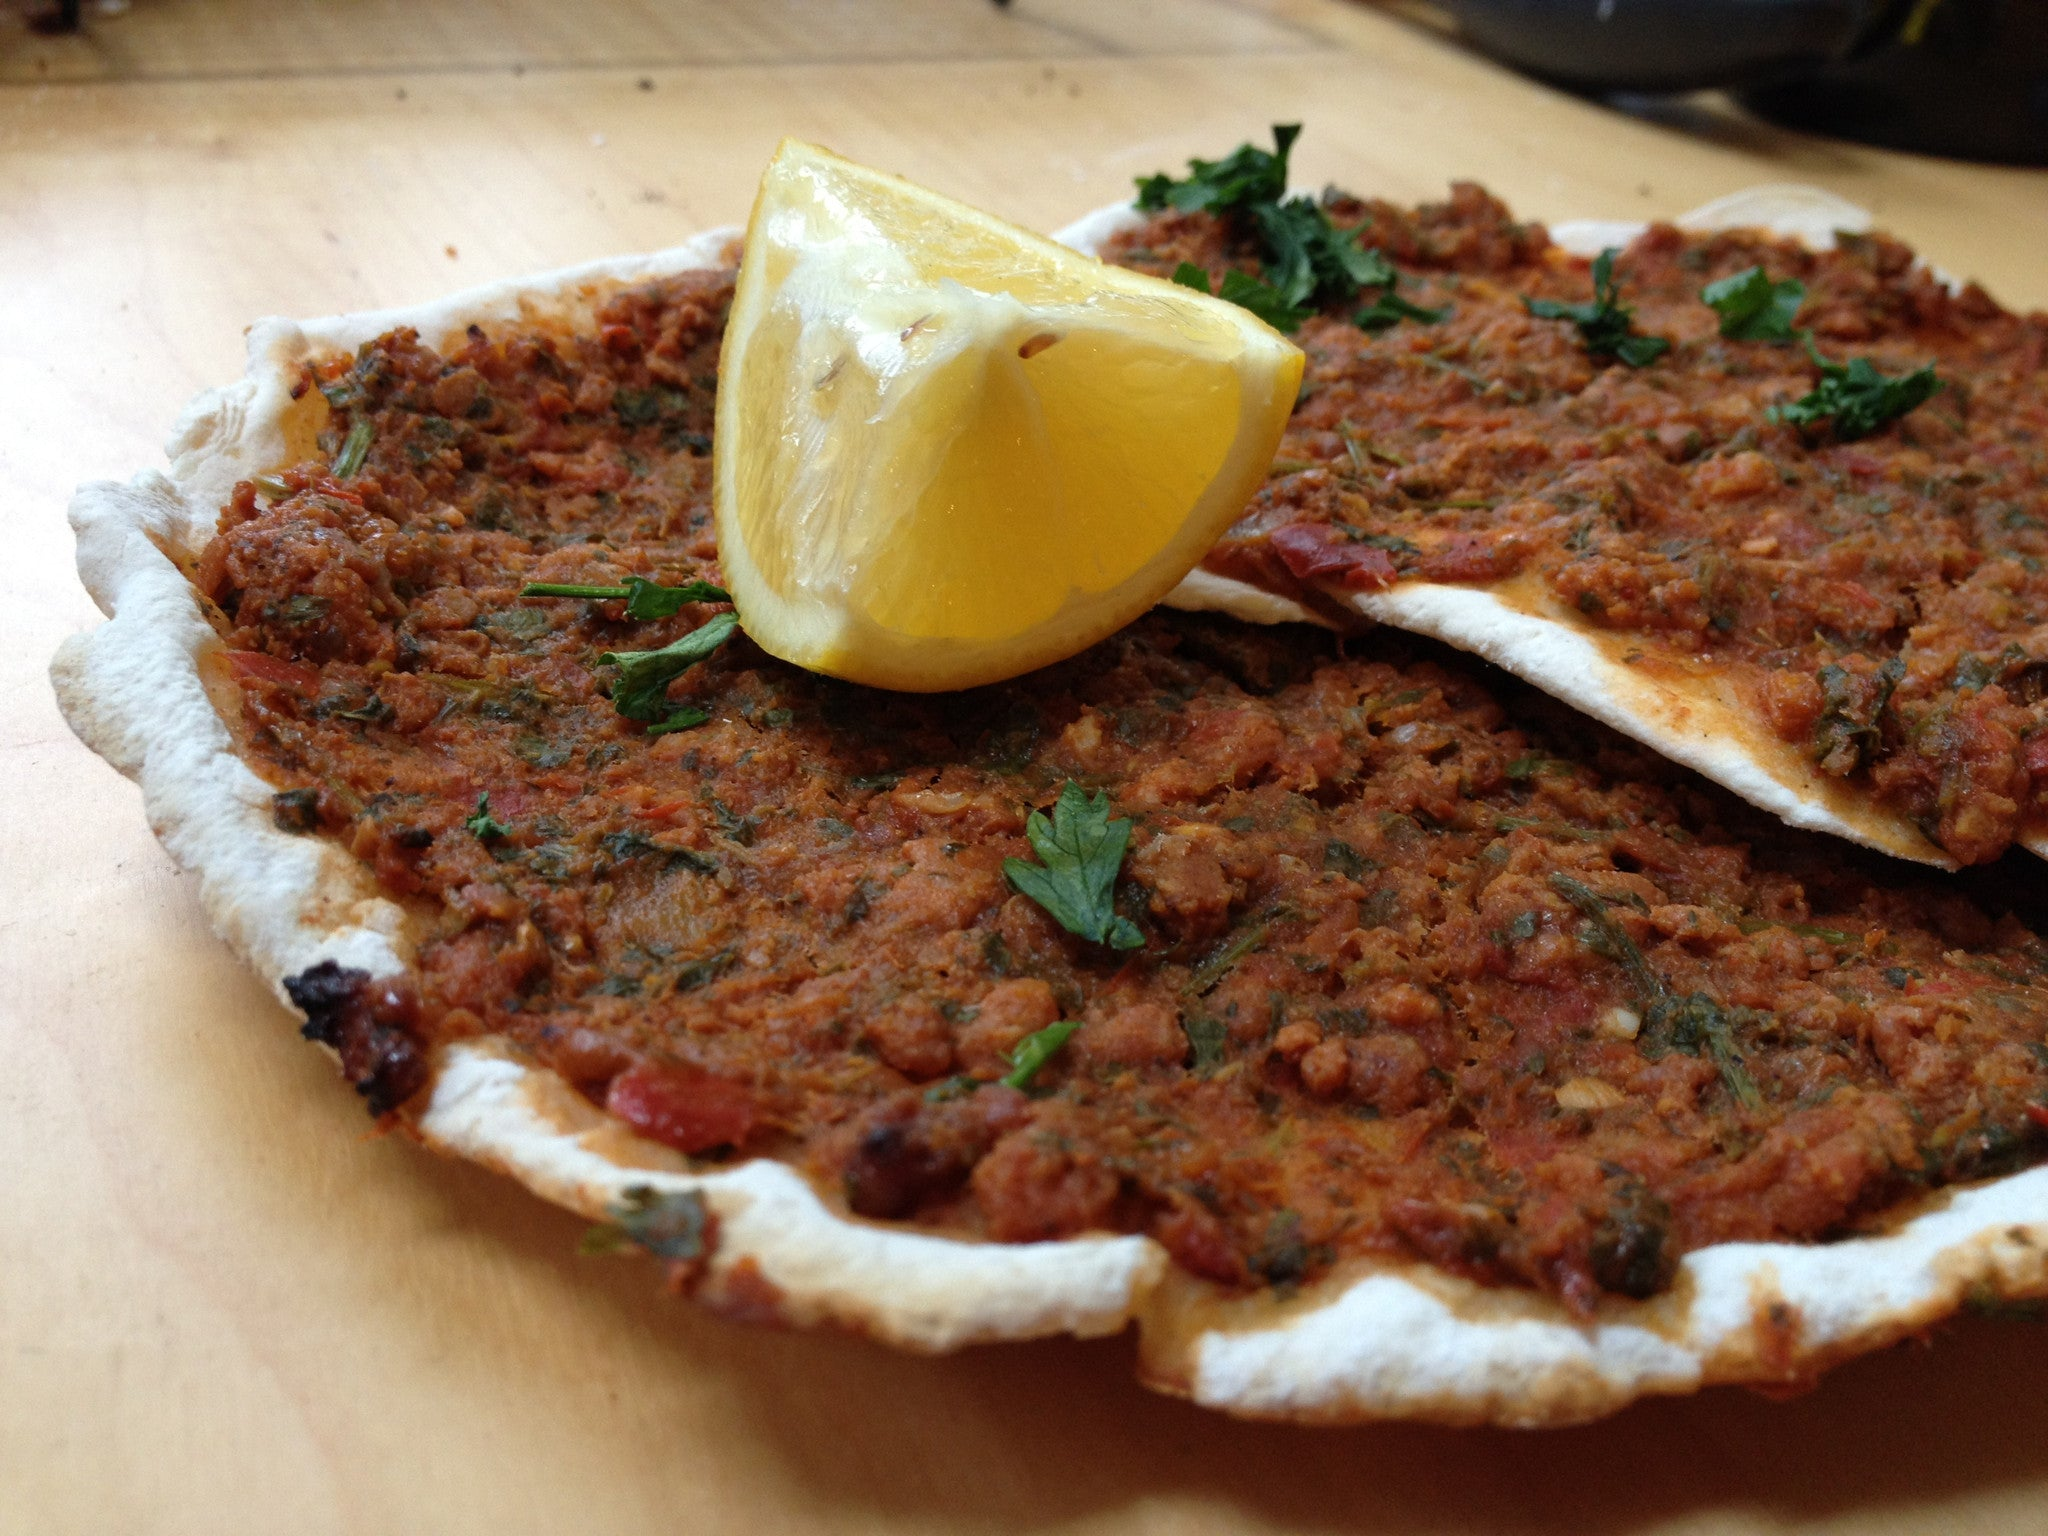 Lahmajoun (Turkish and Armenian pizza) by Arleen